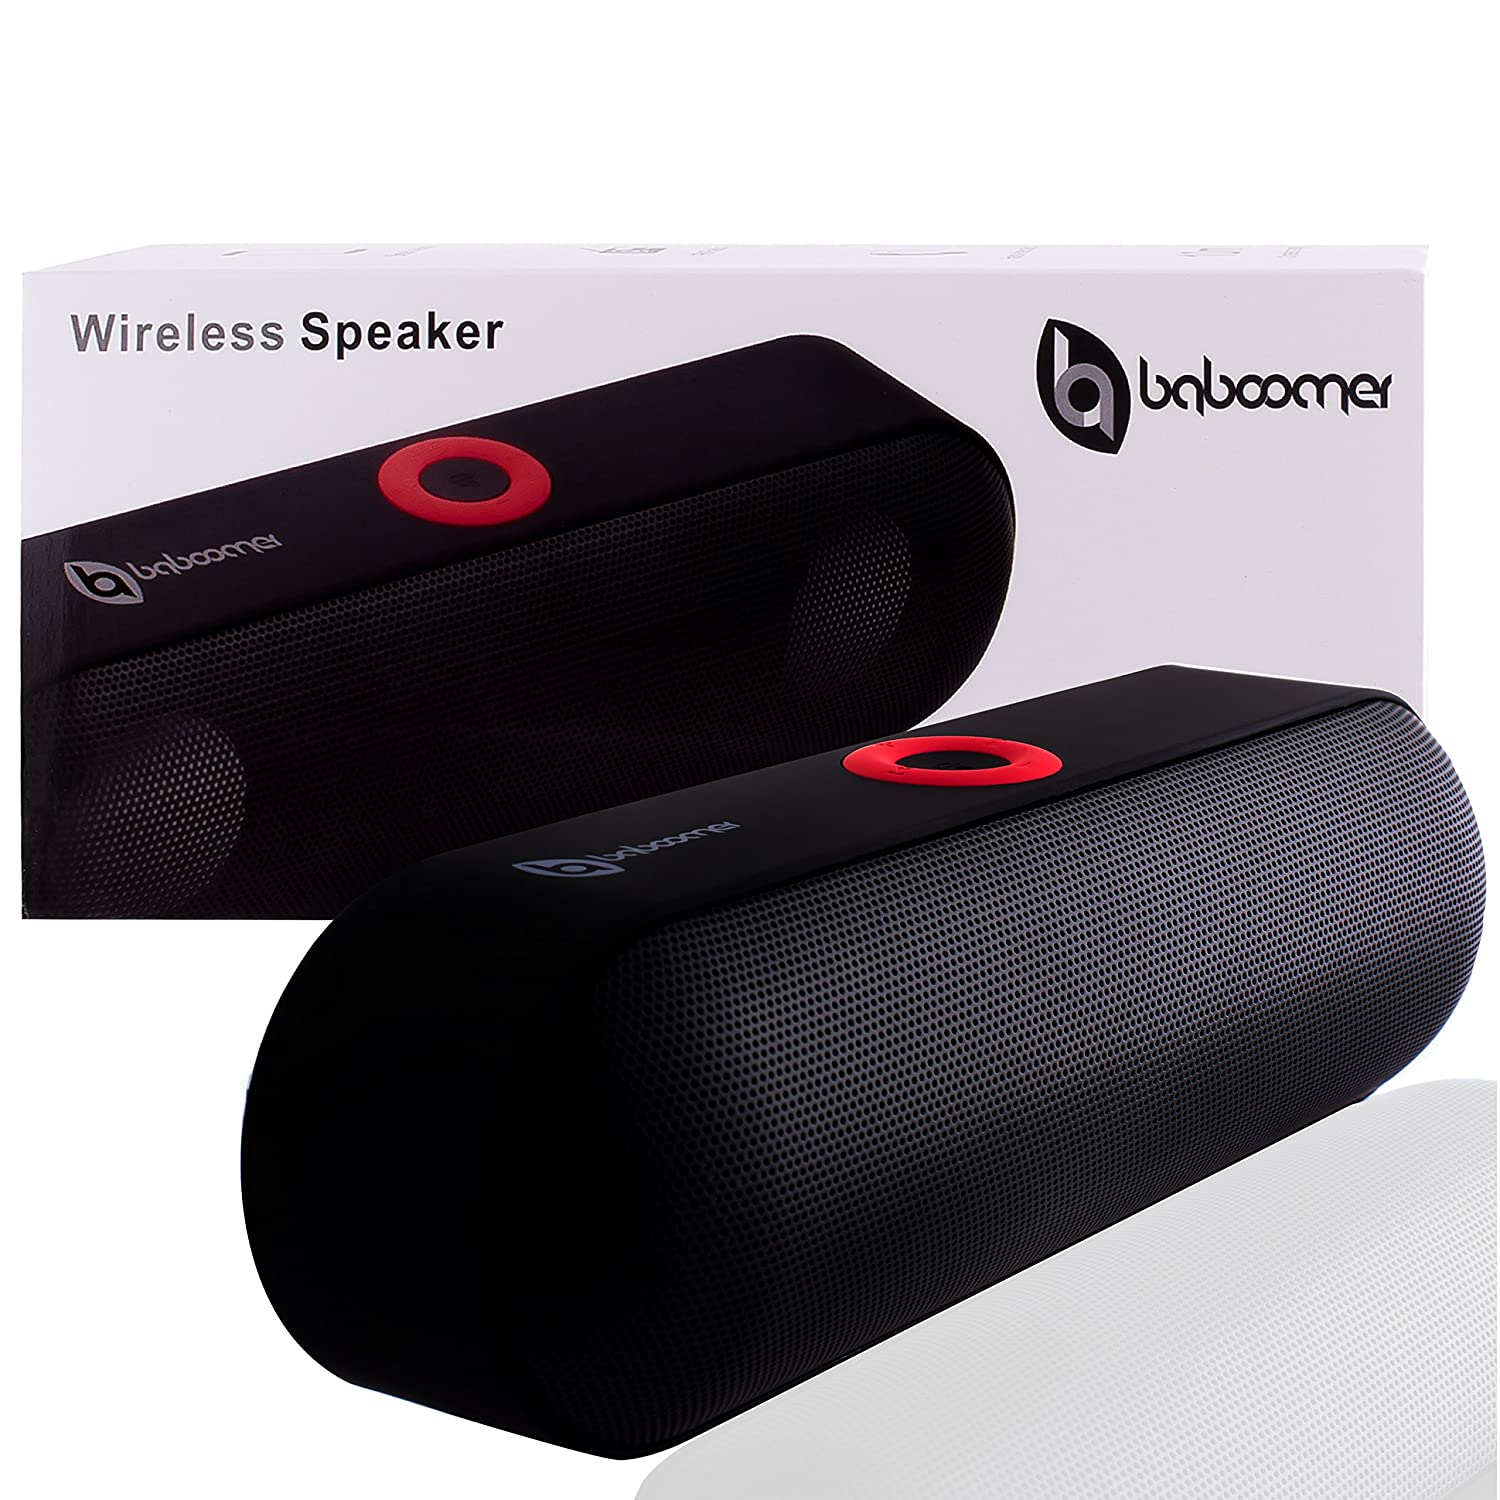 Portable Bluetooth Speaker Crystal Clear Stereo Sound 24Hour Playtime Easy Wireless Stereo Pairing